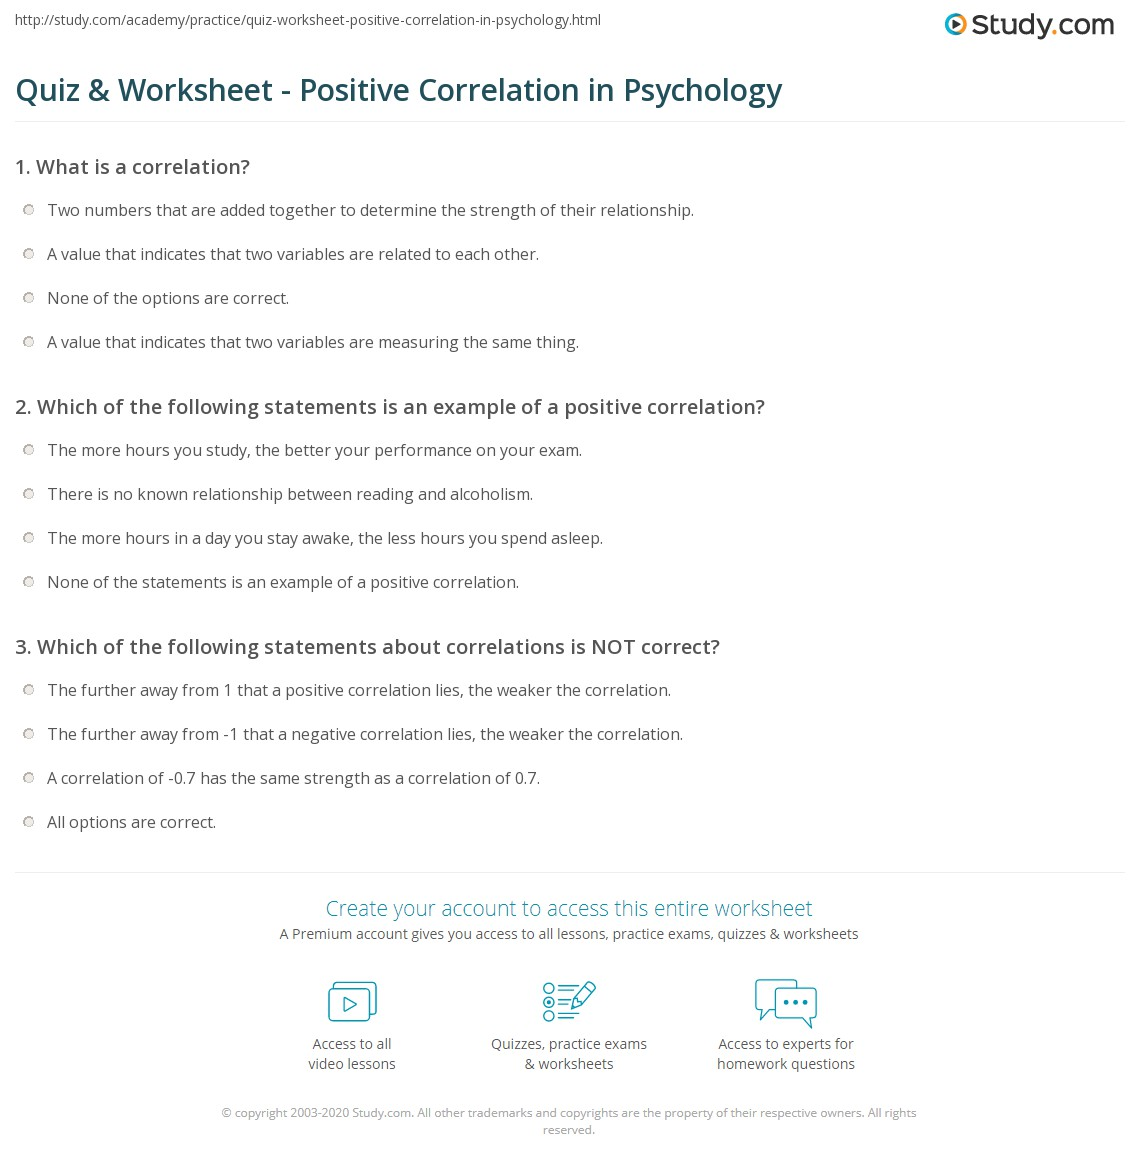 Printables High School Psychology Worksheets Eatfindr Worksheets Printables